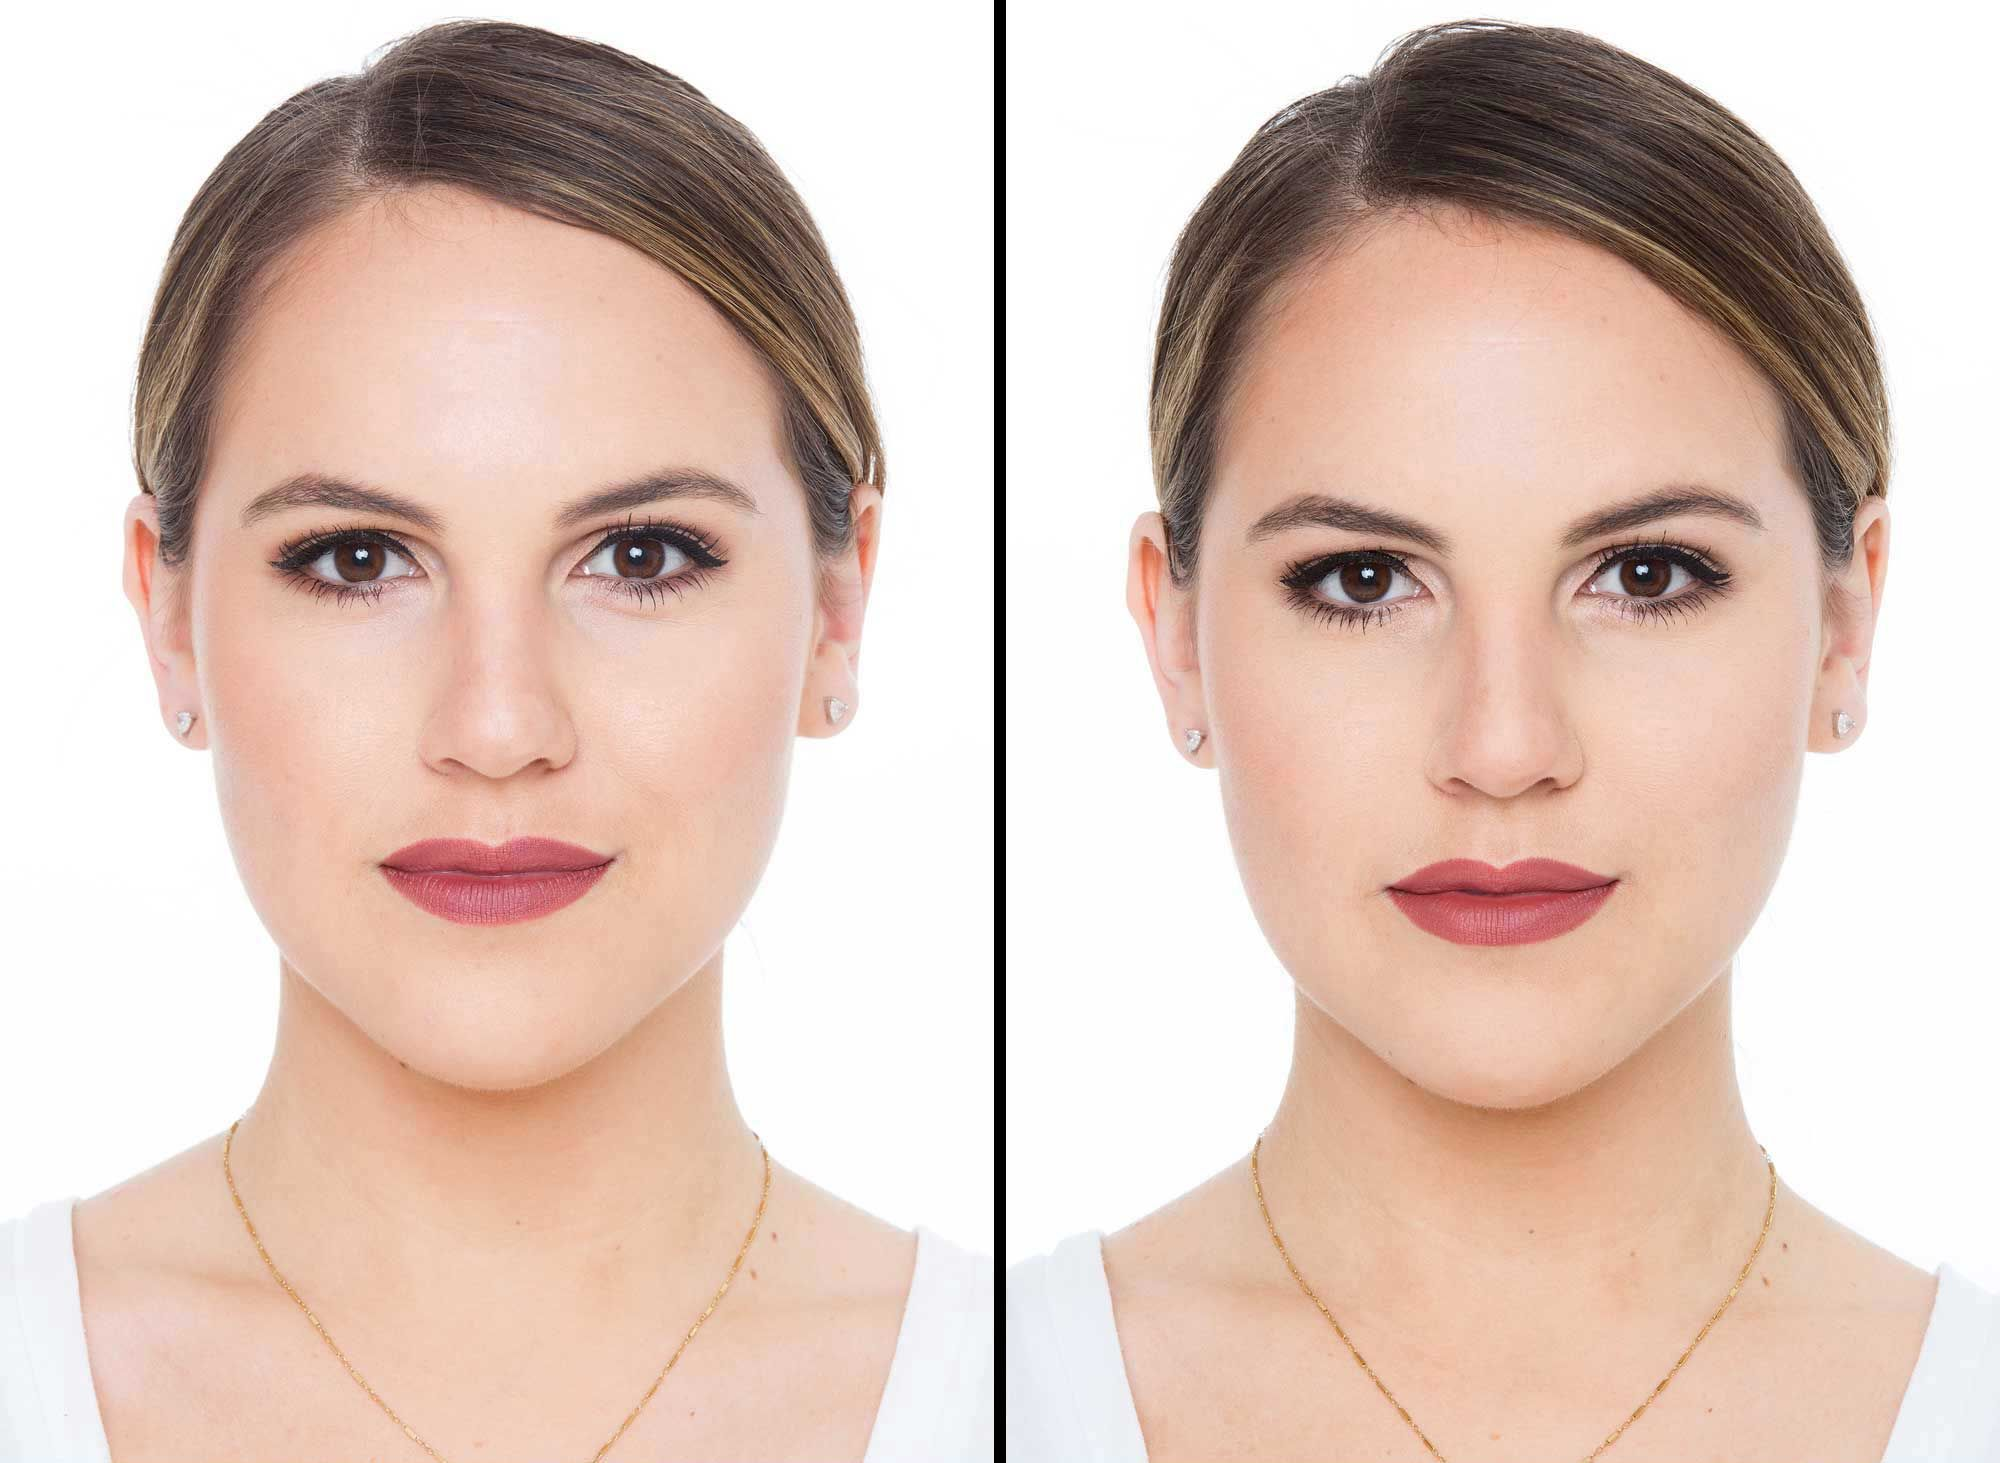 Cheap Drugstore Makeup Compared To Expensive Department Store Makeup